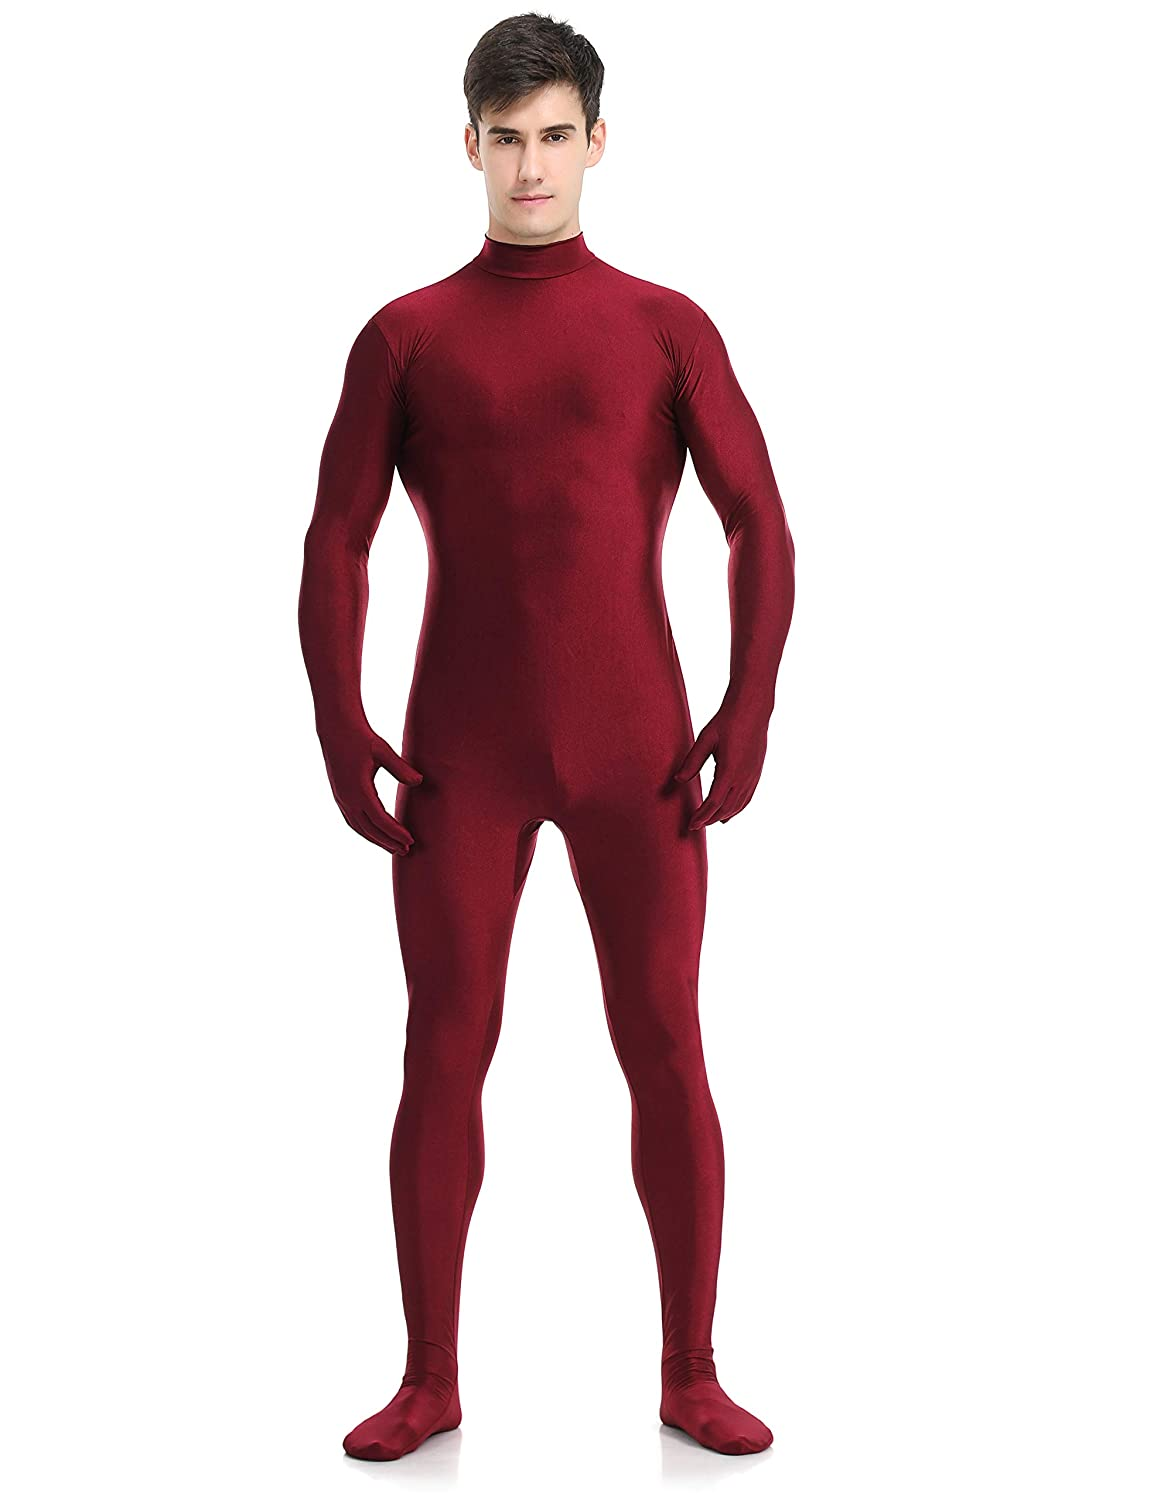 b33888f8ae05 Amazon.com  speerise Adult Full Lycra Spandex Bodysuit Unitard Costume  Zentai Suit Without Hood  Toys   Games